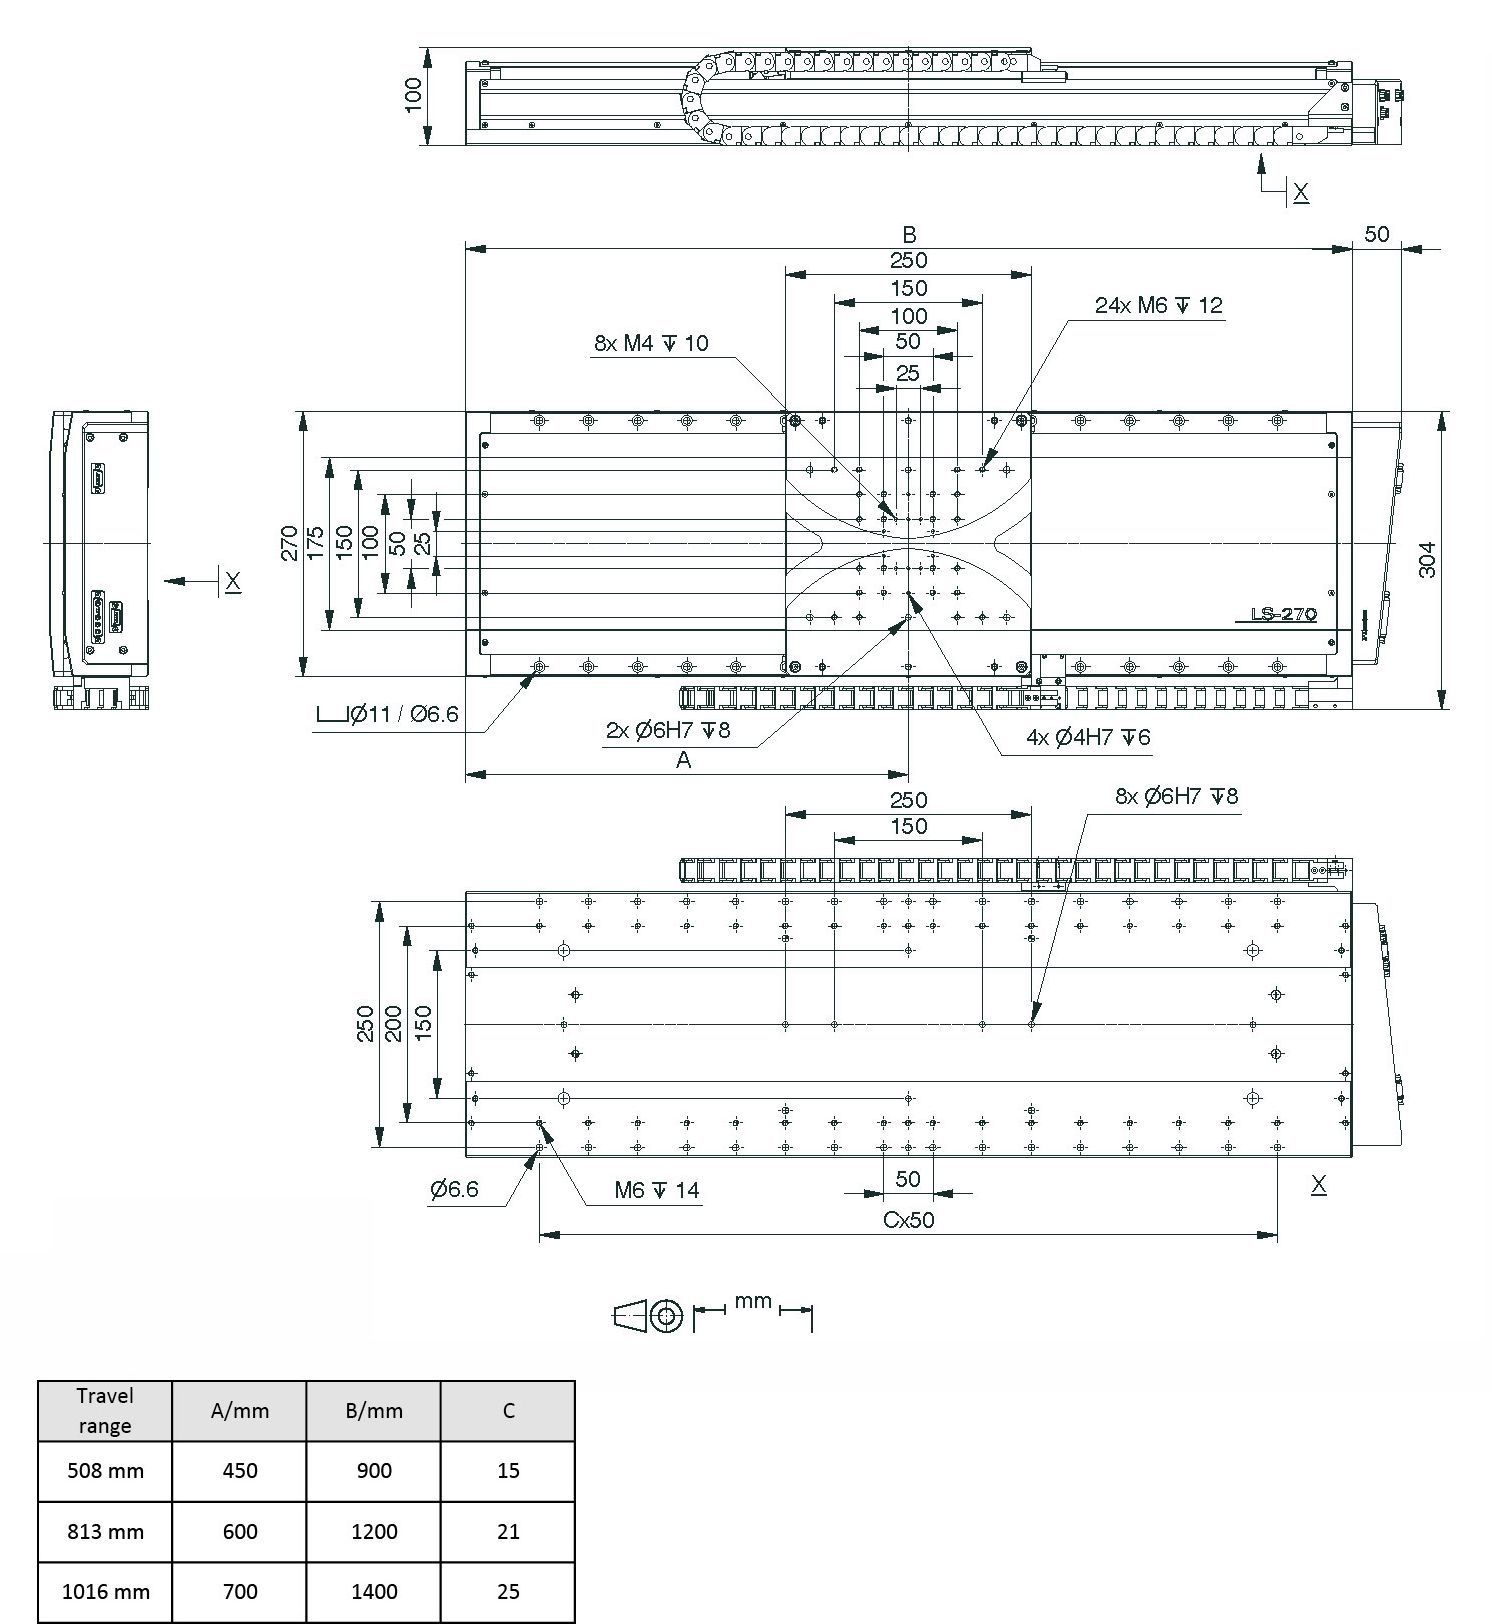 Lms 270 Precision Linear Stage Circuit Diagram Furthermore Variable Frequency Drive Pi Drawing